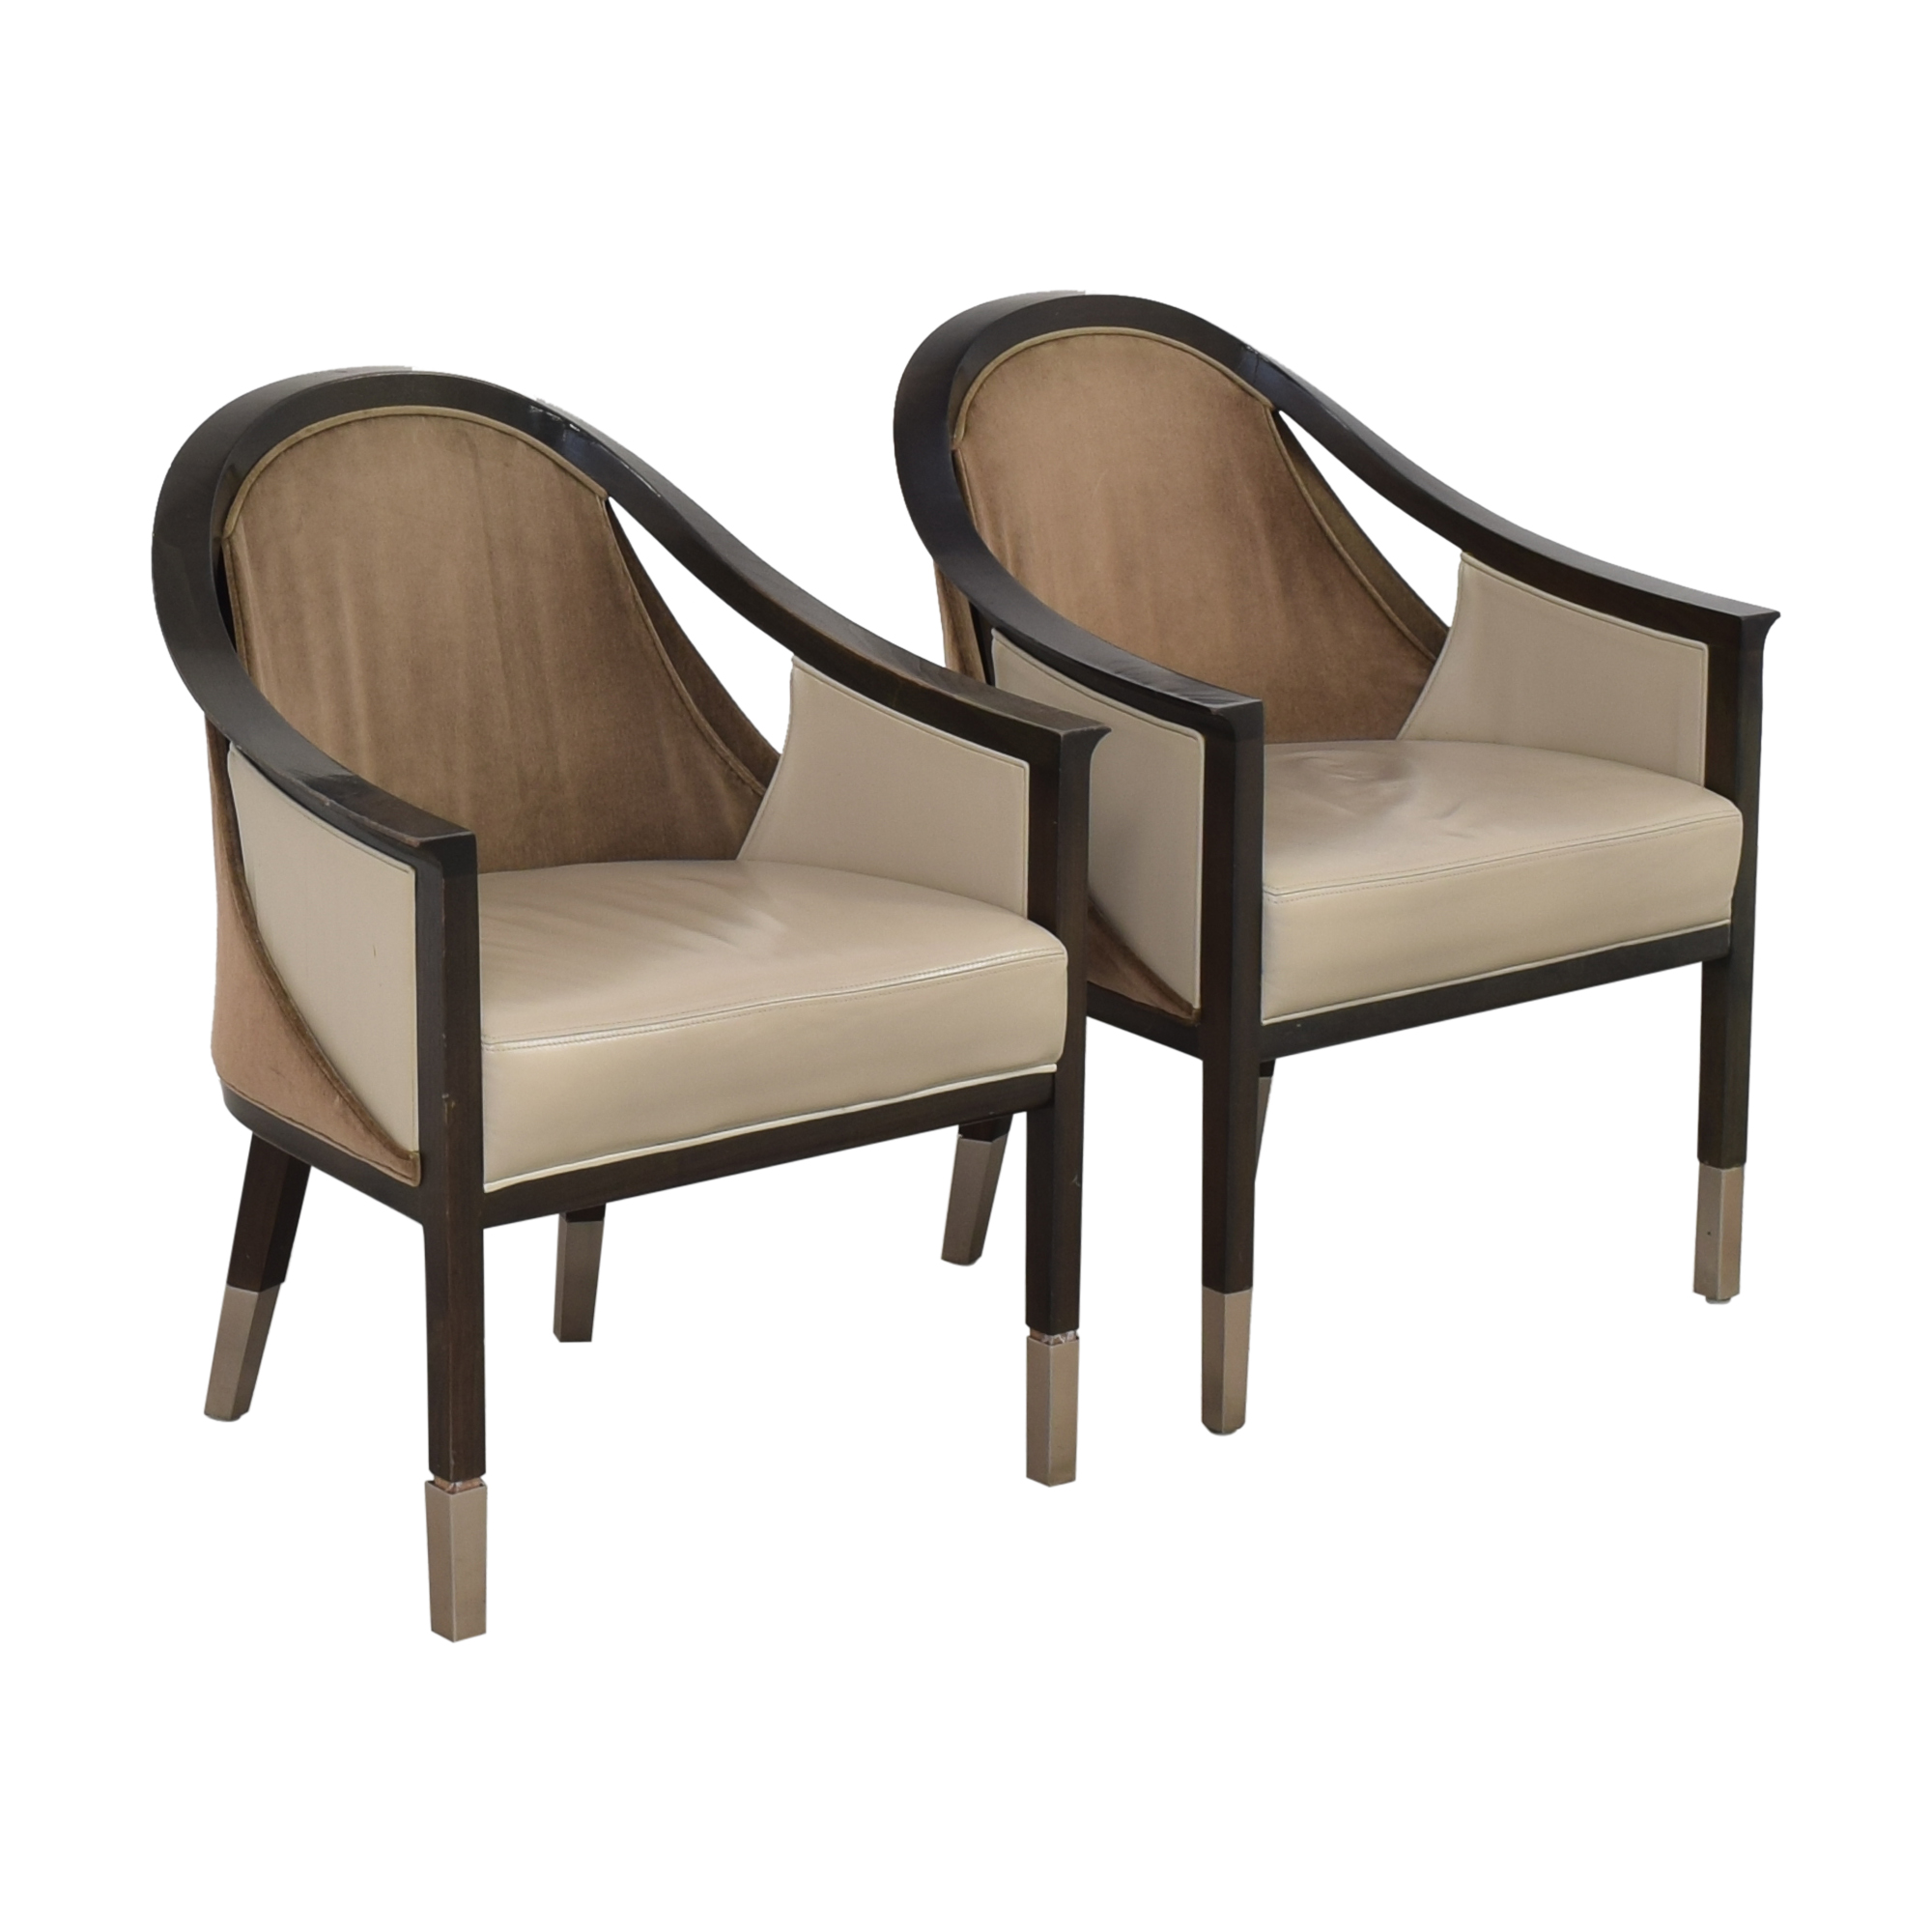 Allied Form Works Allied Works Eleven Madison Park Dining Room Chairs ct